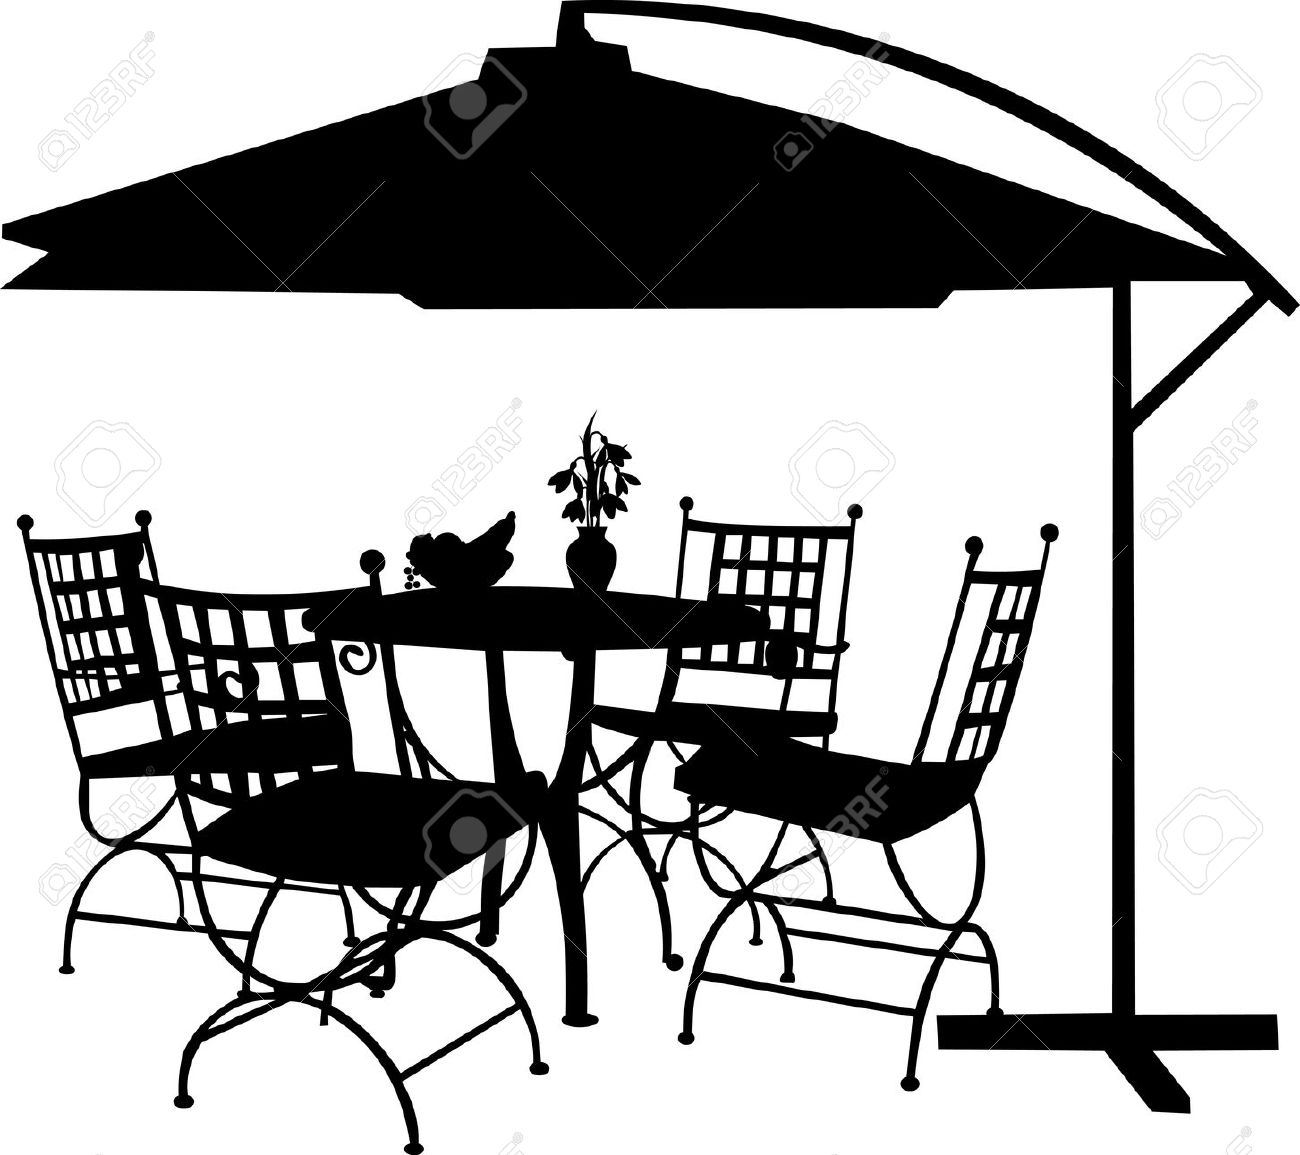 Garden table chairs party clipart.